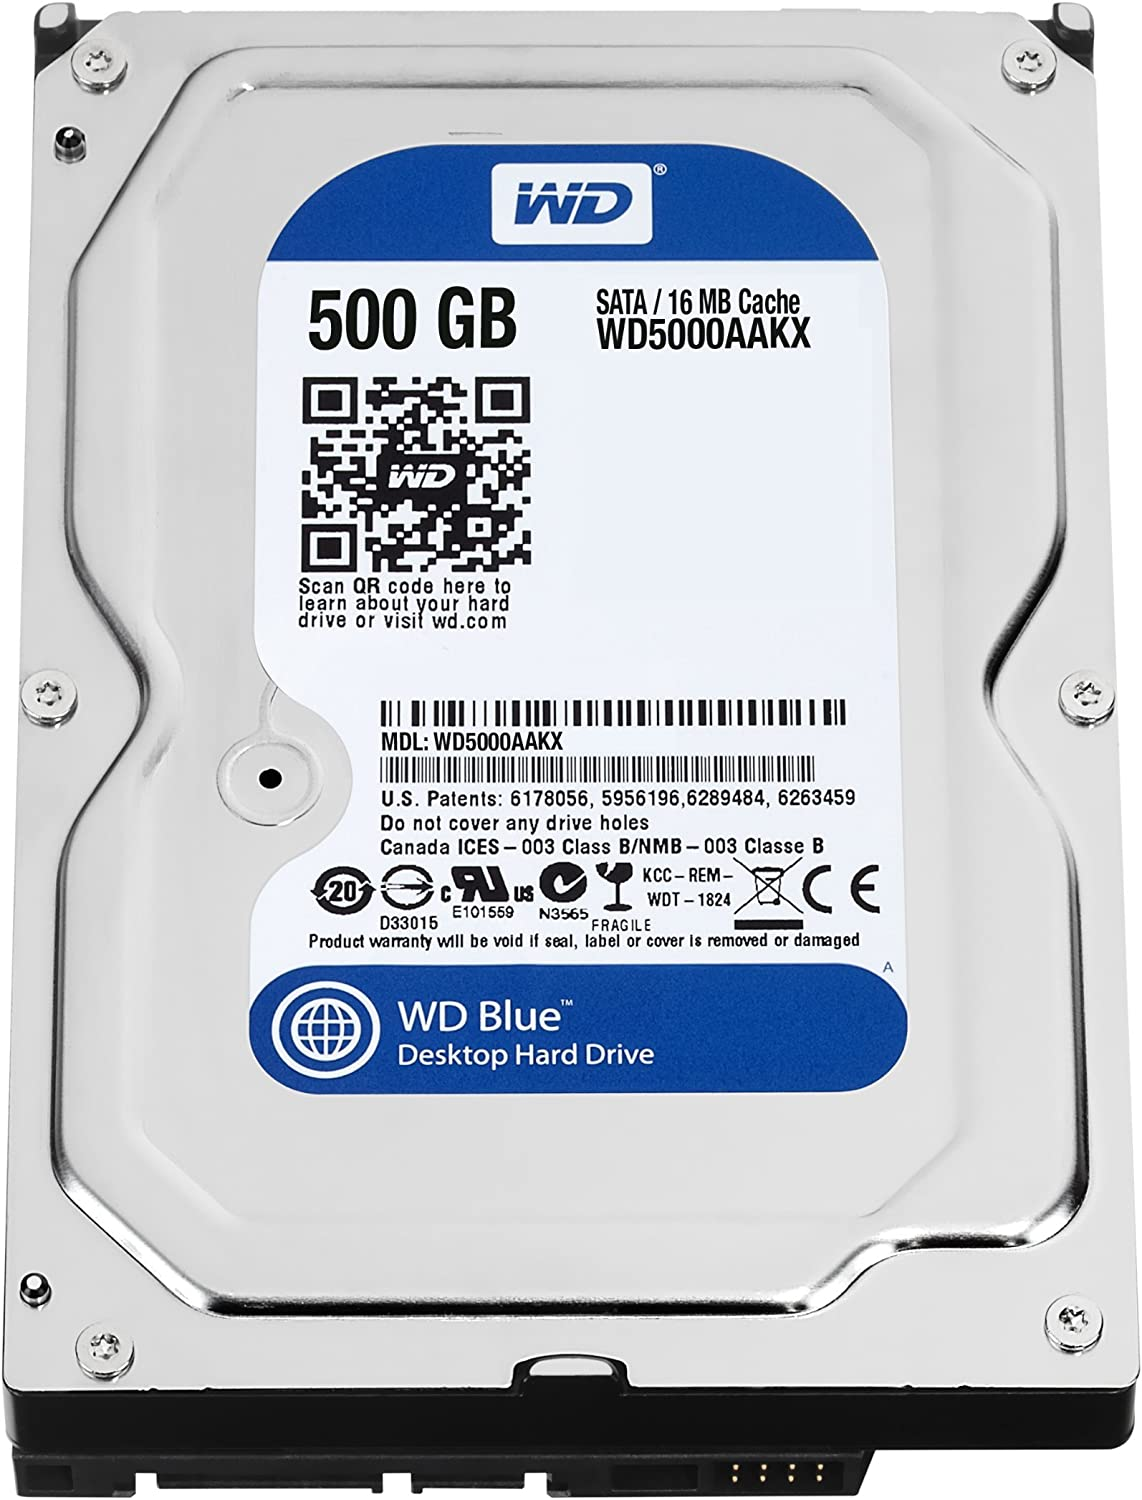 WD Blue 500GBDesktopHard Disk Drive - 7200 RPM SATA 6 Gb/s 16MB Cache 3.5 Inch- WD5000AAKX (Renewed)